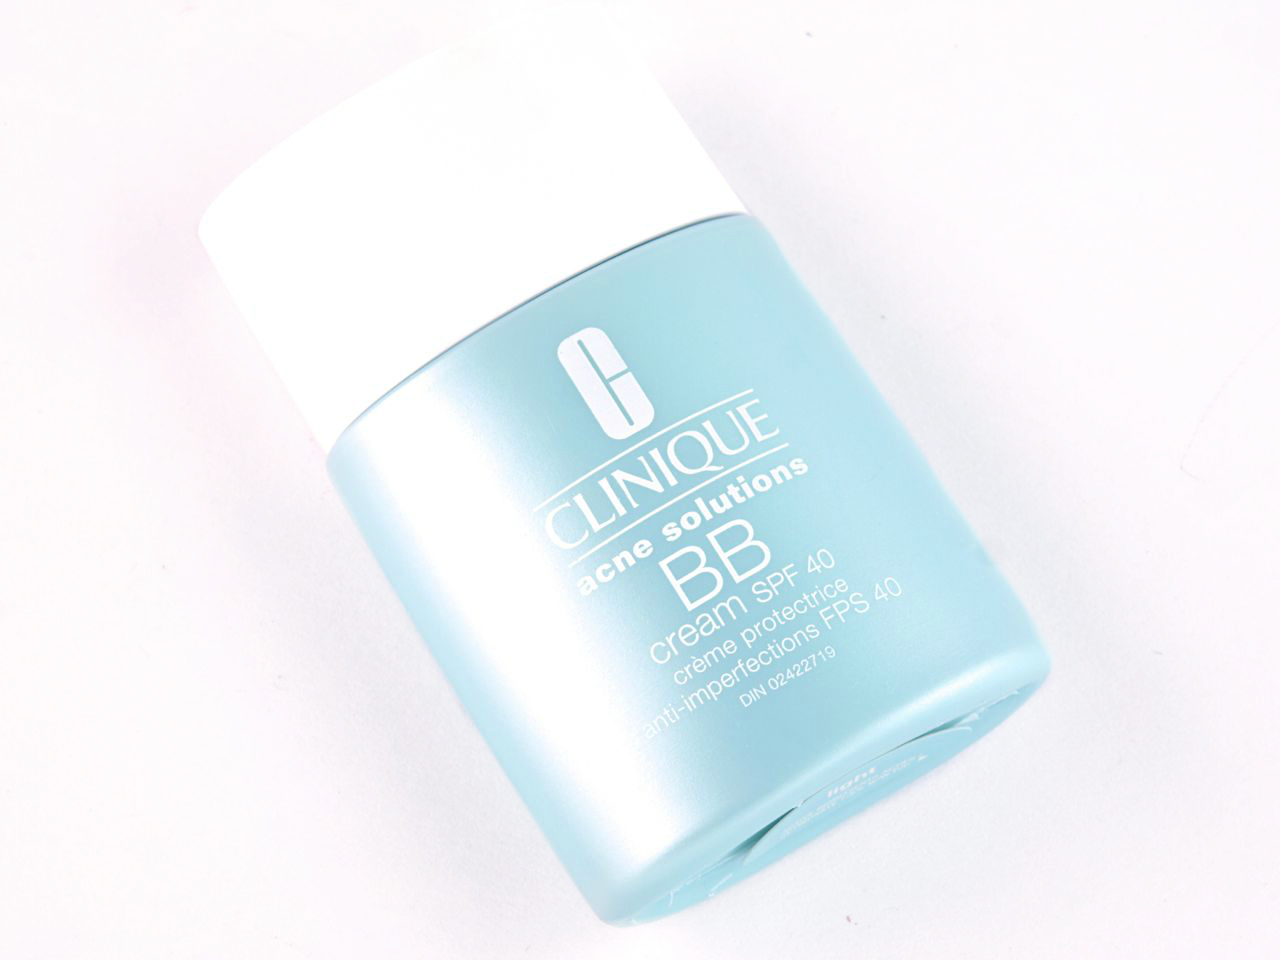 """Clinique Acne Solutions BB Cream SPF 40 in """"Light"""": Review and Swatches"""